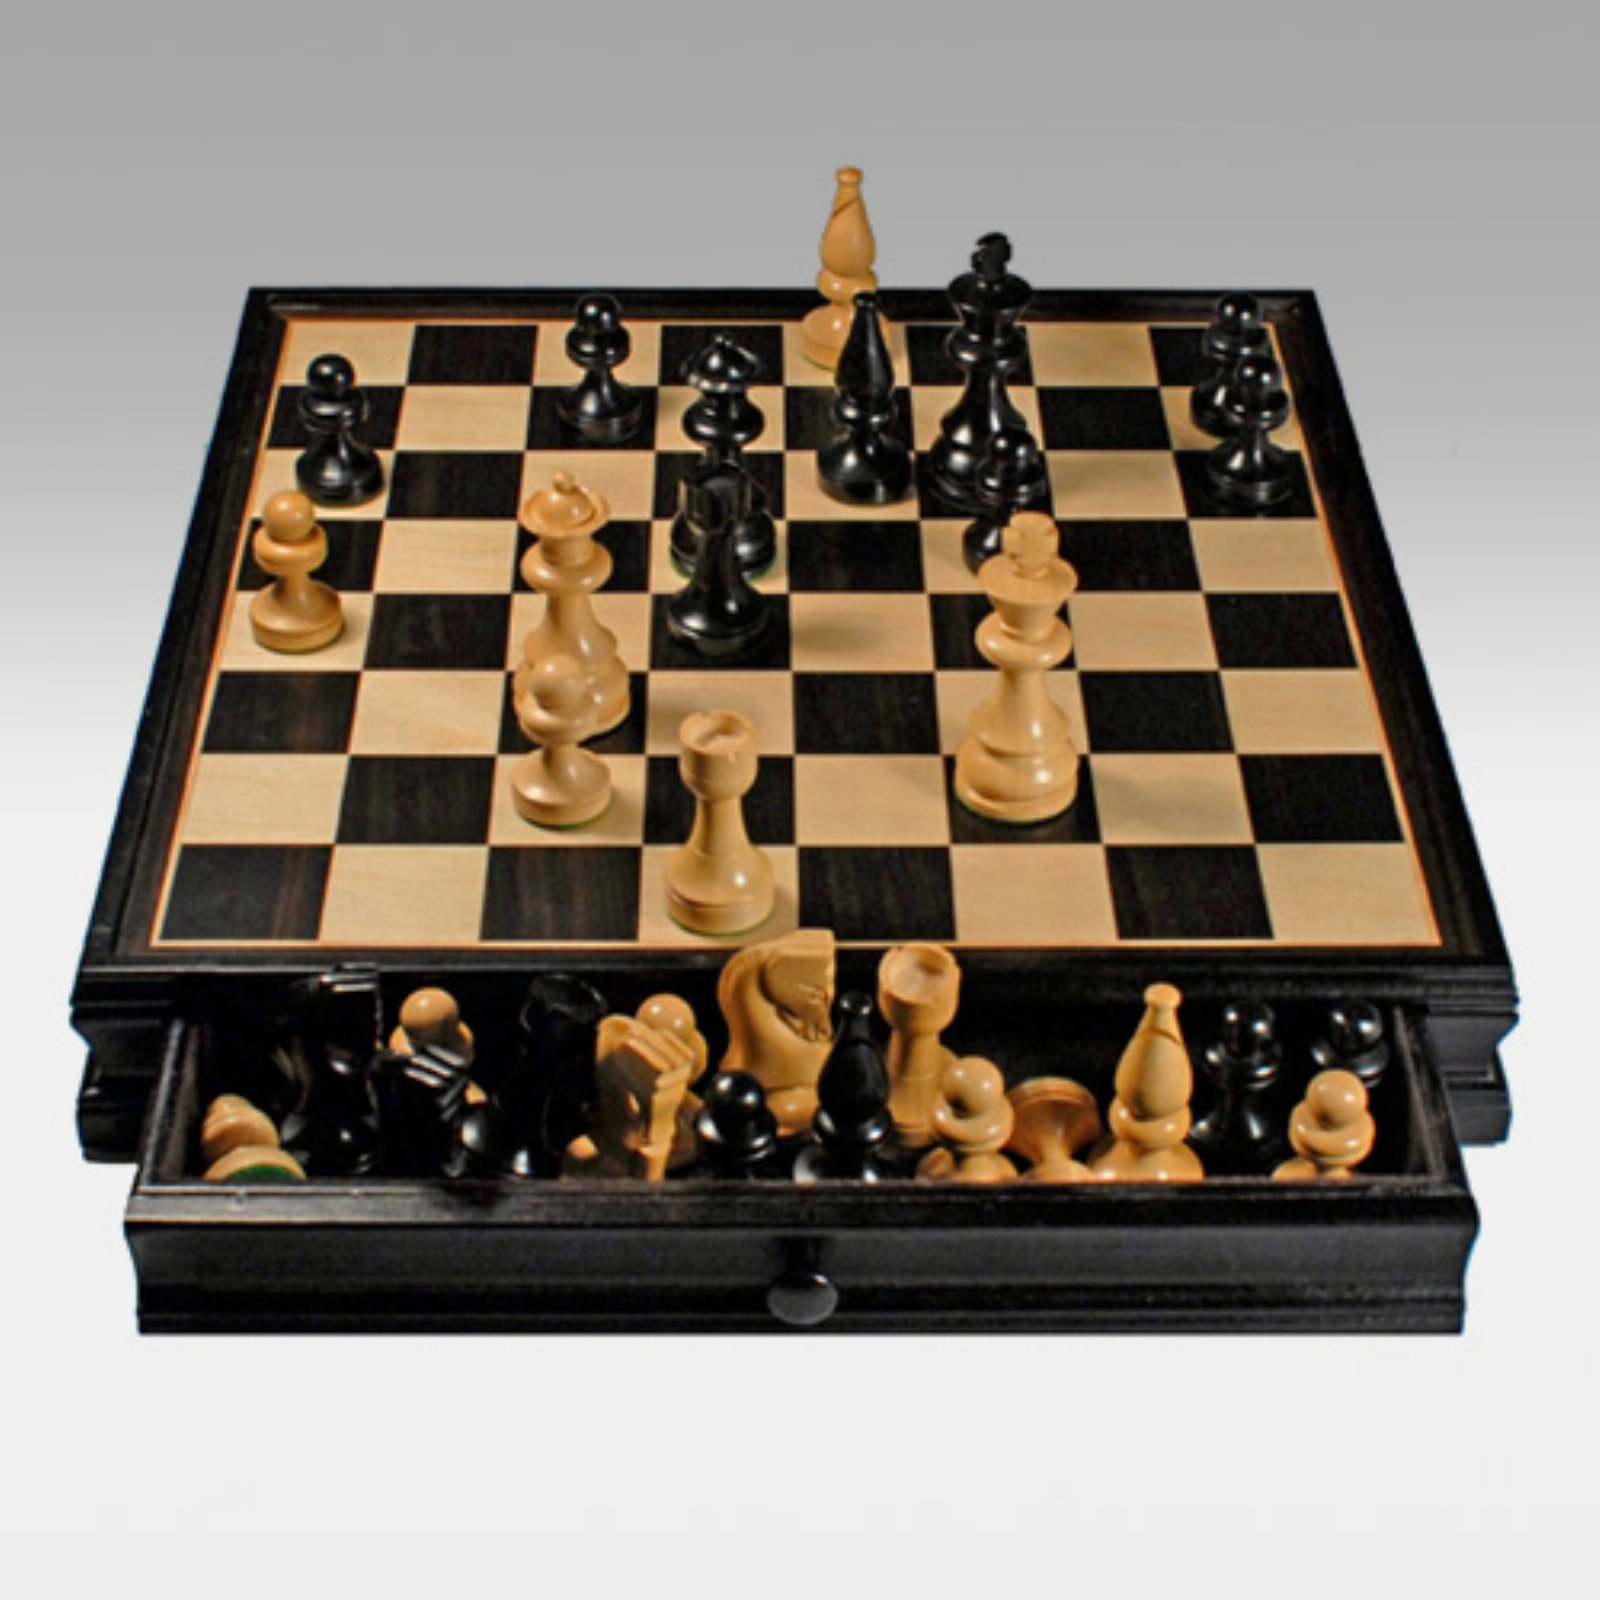 Russian Style Chess and Checkers Game Set, Weighted Chessmen and Black Stained Wood Board with Storage Drawers, 15""